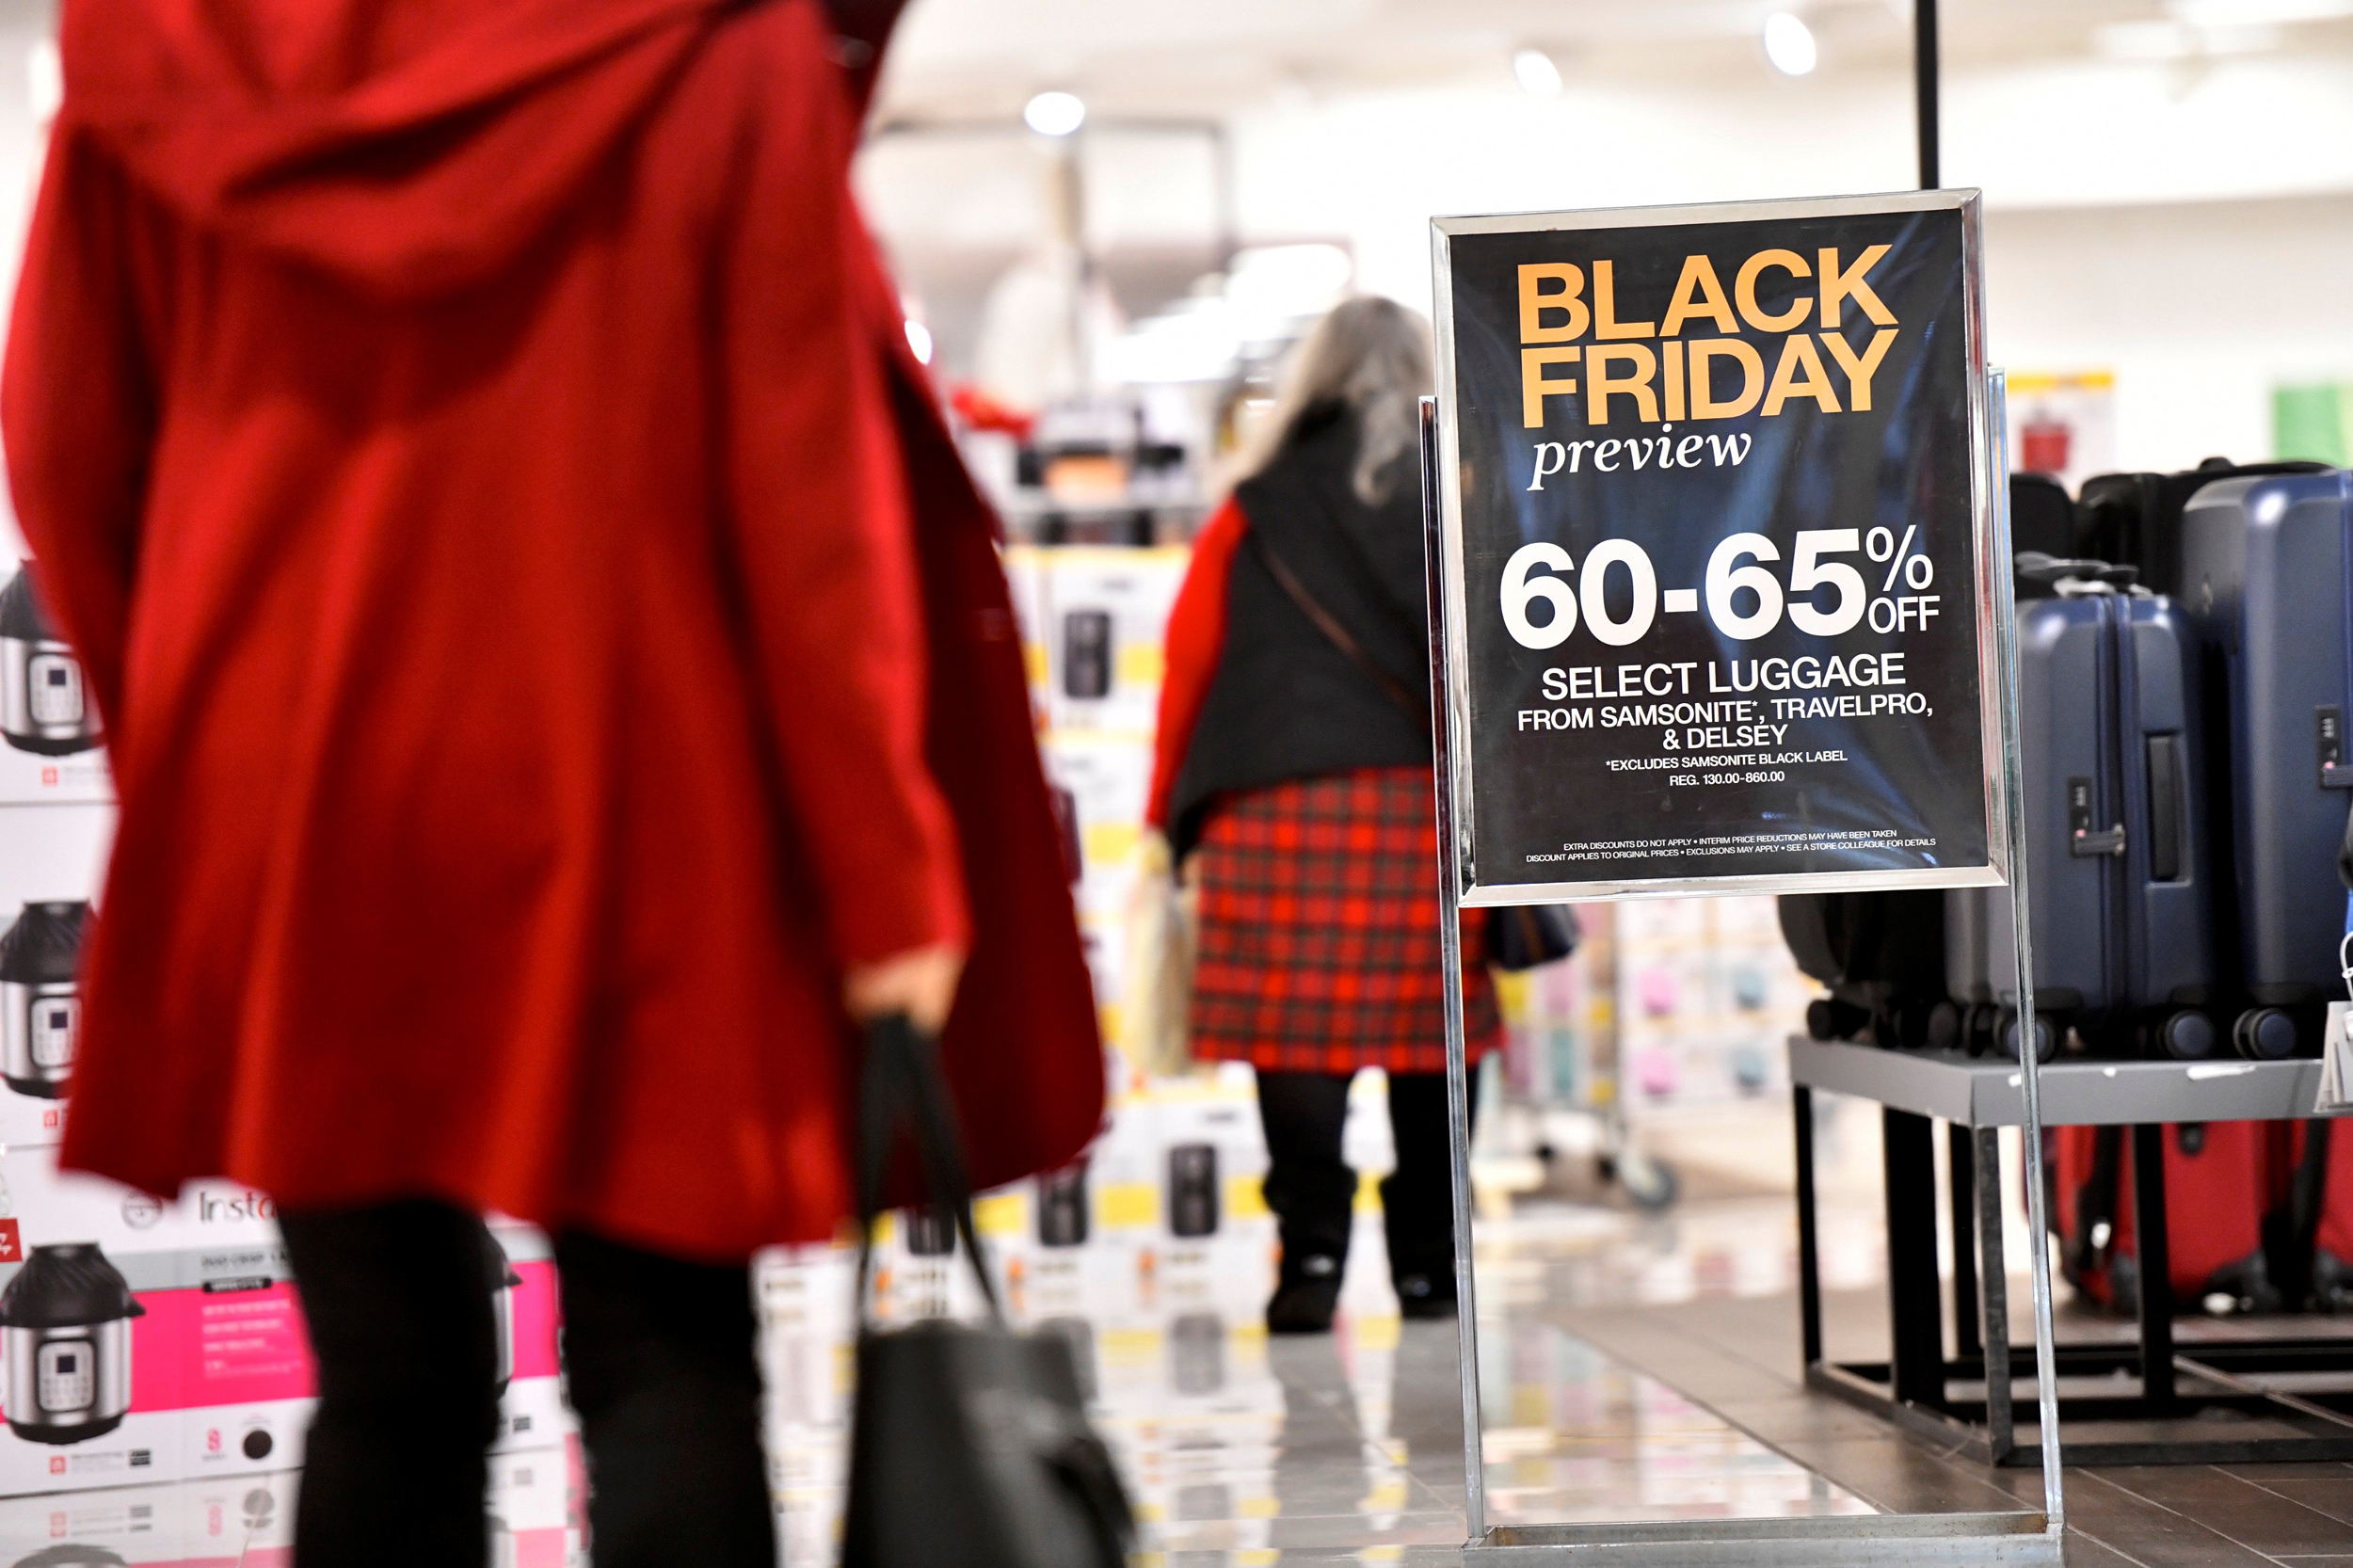 How To Find The Best Deals On Black Friday And Cyber Monday